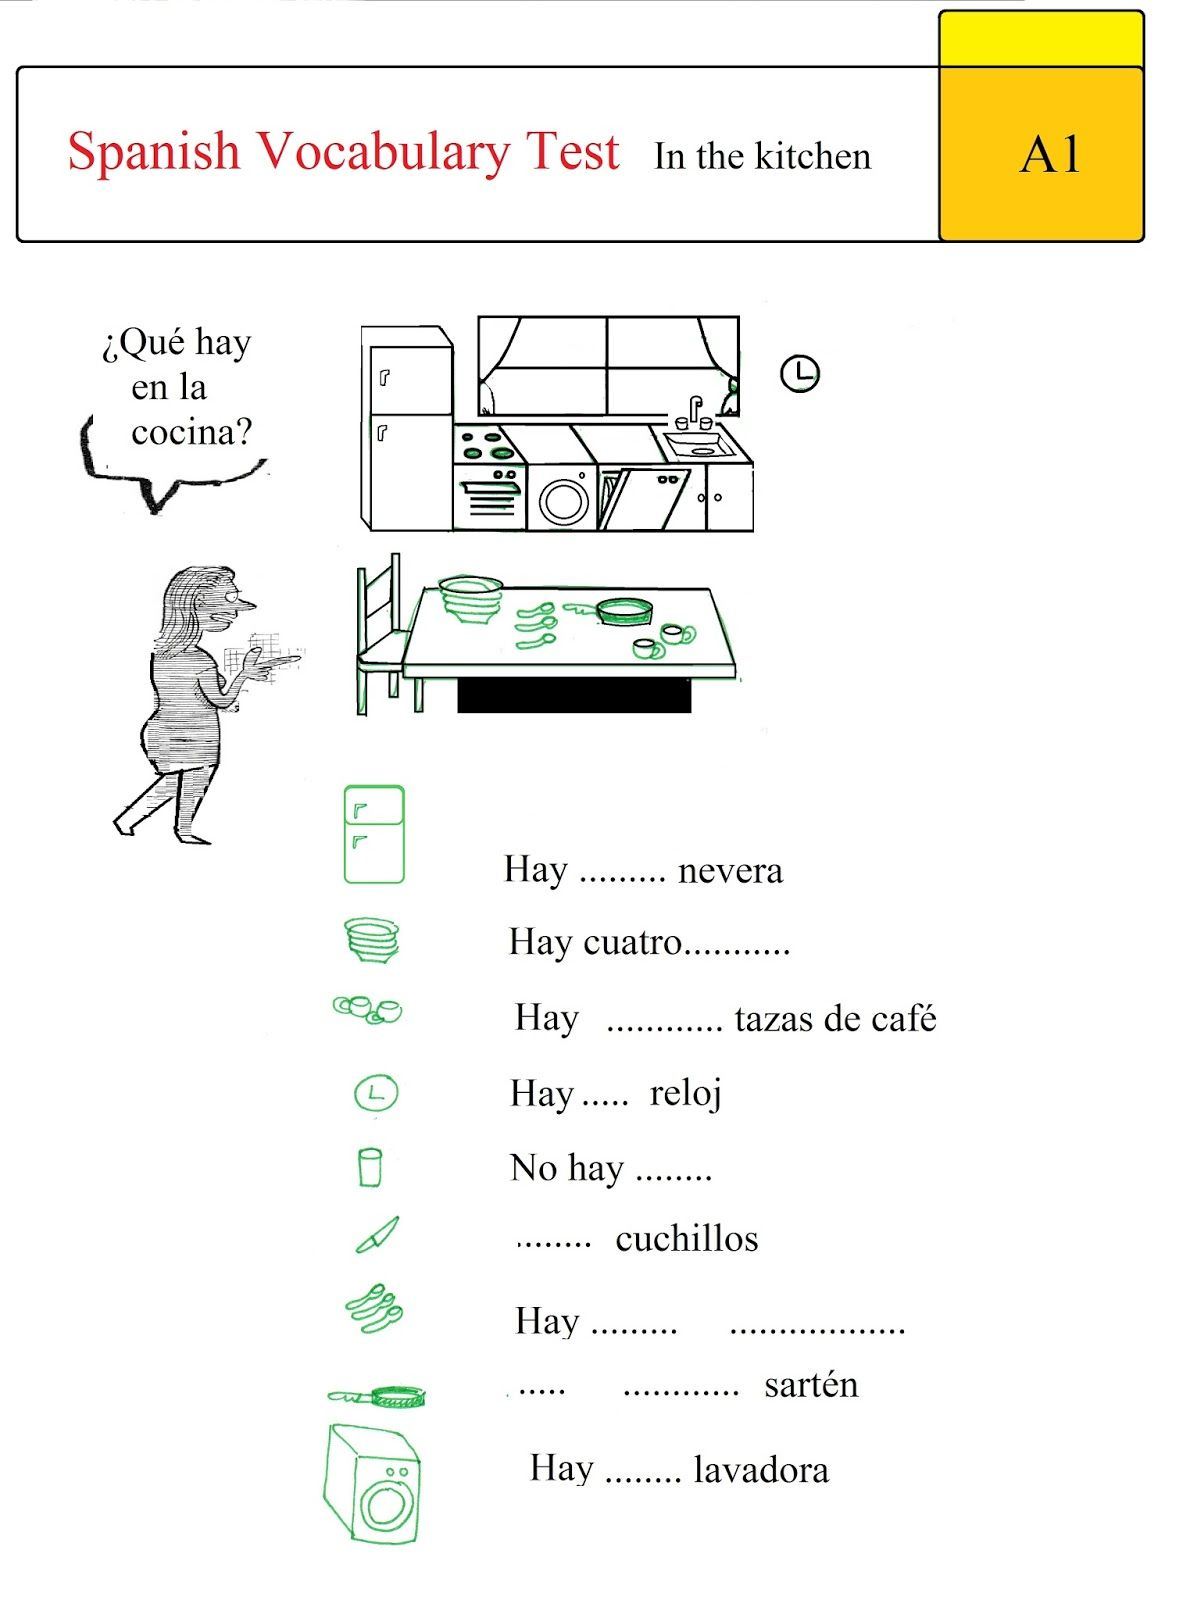 Spanish Test Spanish Vocabulary Test In The Kitchen A1